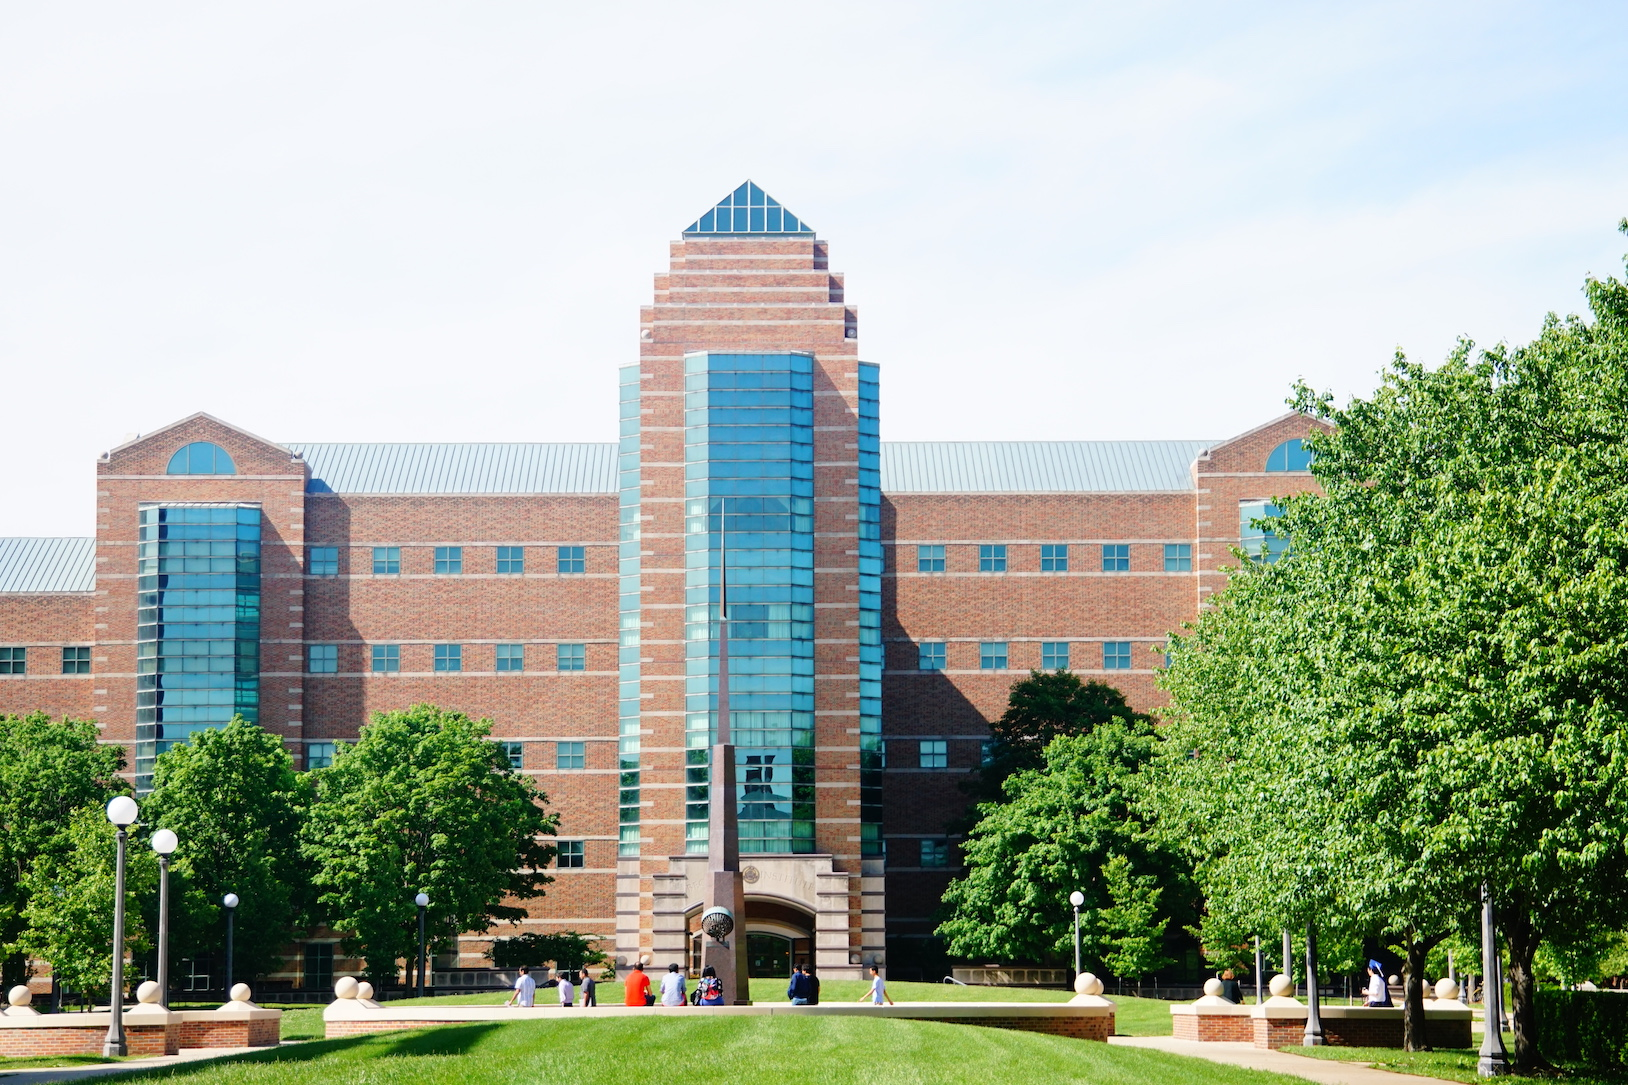 Beckman Institute as seen from the Engineering Quad